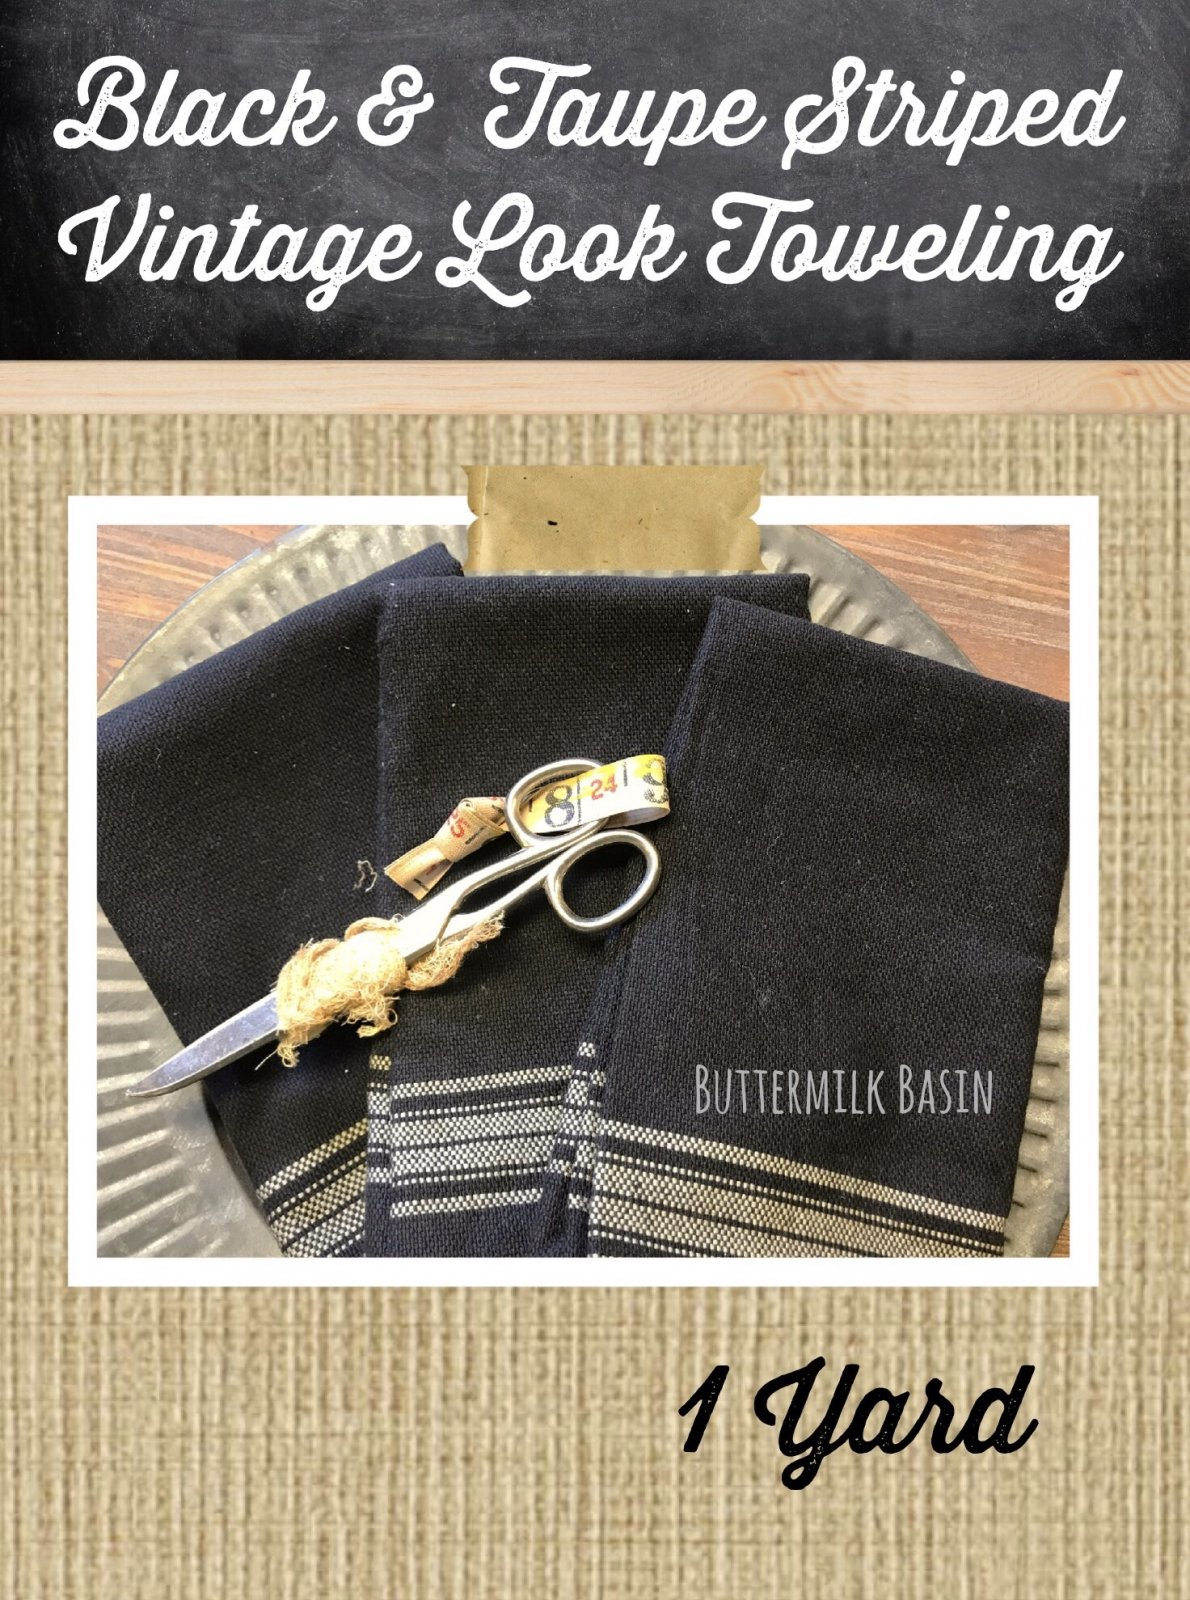 Black & Taupe Striped Vintage Look Toweling